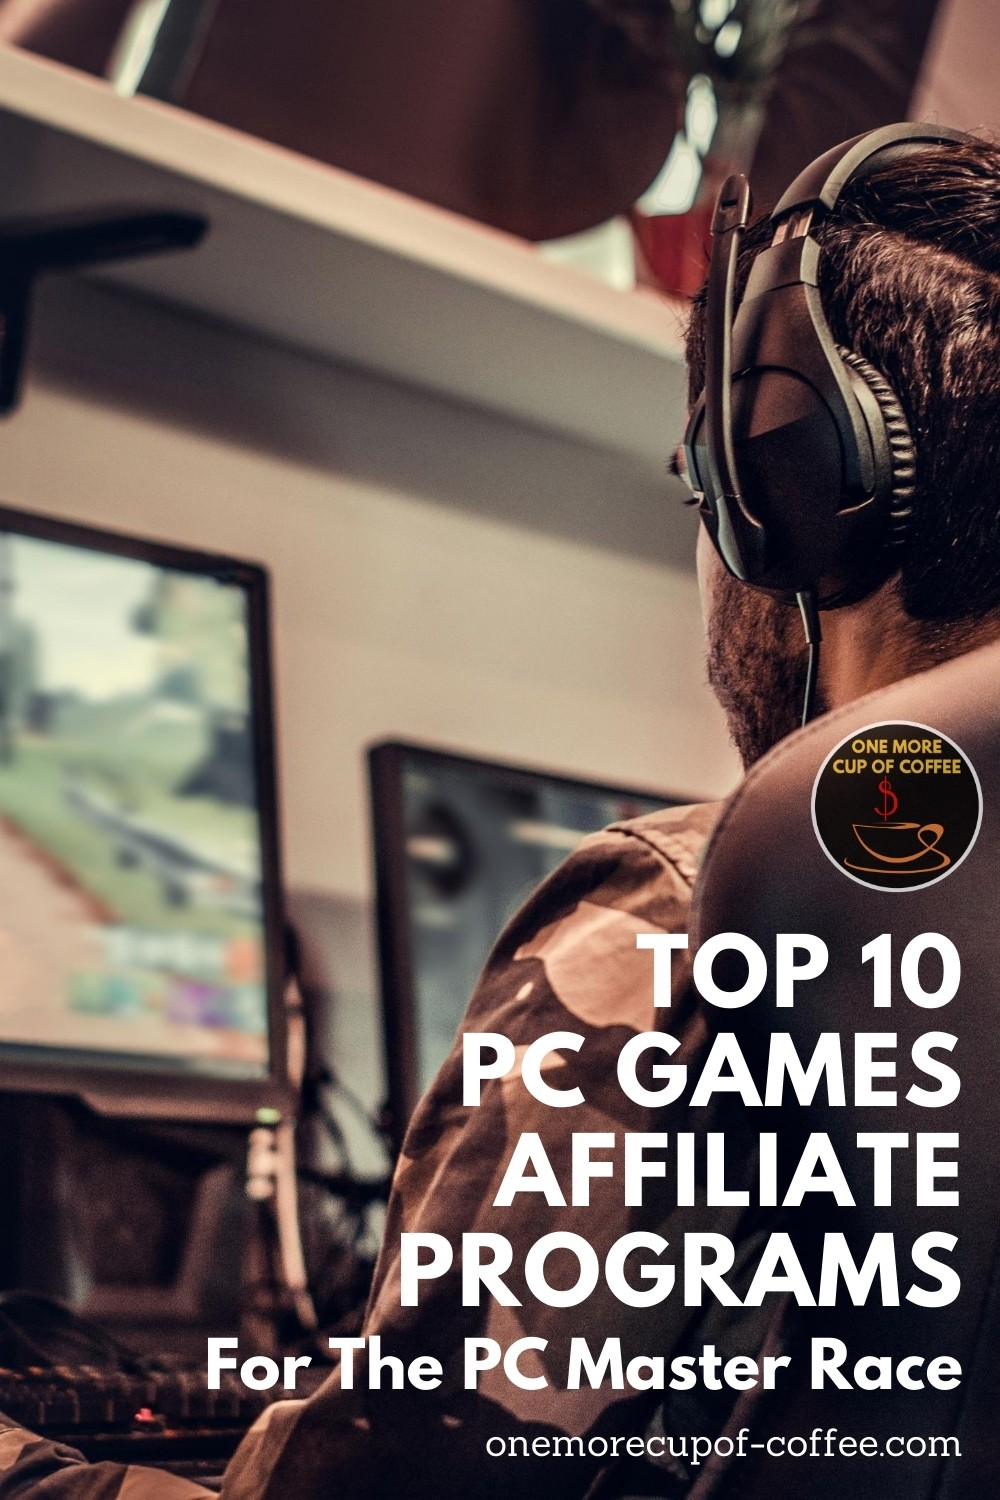 """man with headset seating in front of the computer playing pc games, with text overlay """"Top 10 PC Games Affiliate Programs For The PC Master Race"""""""